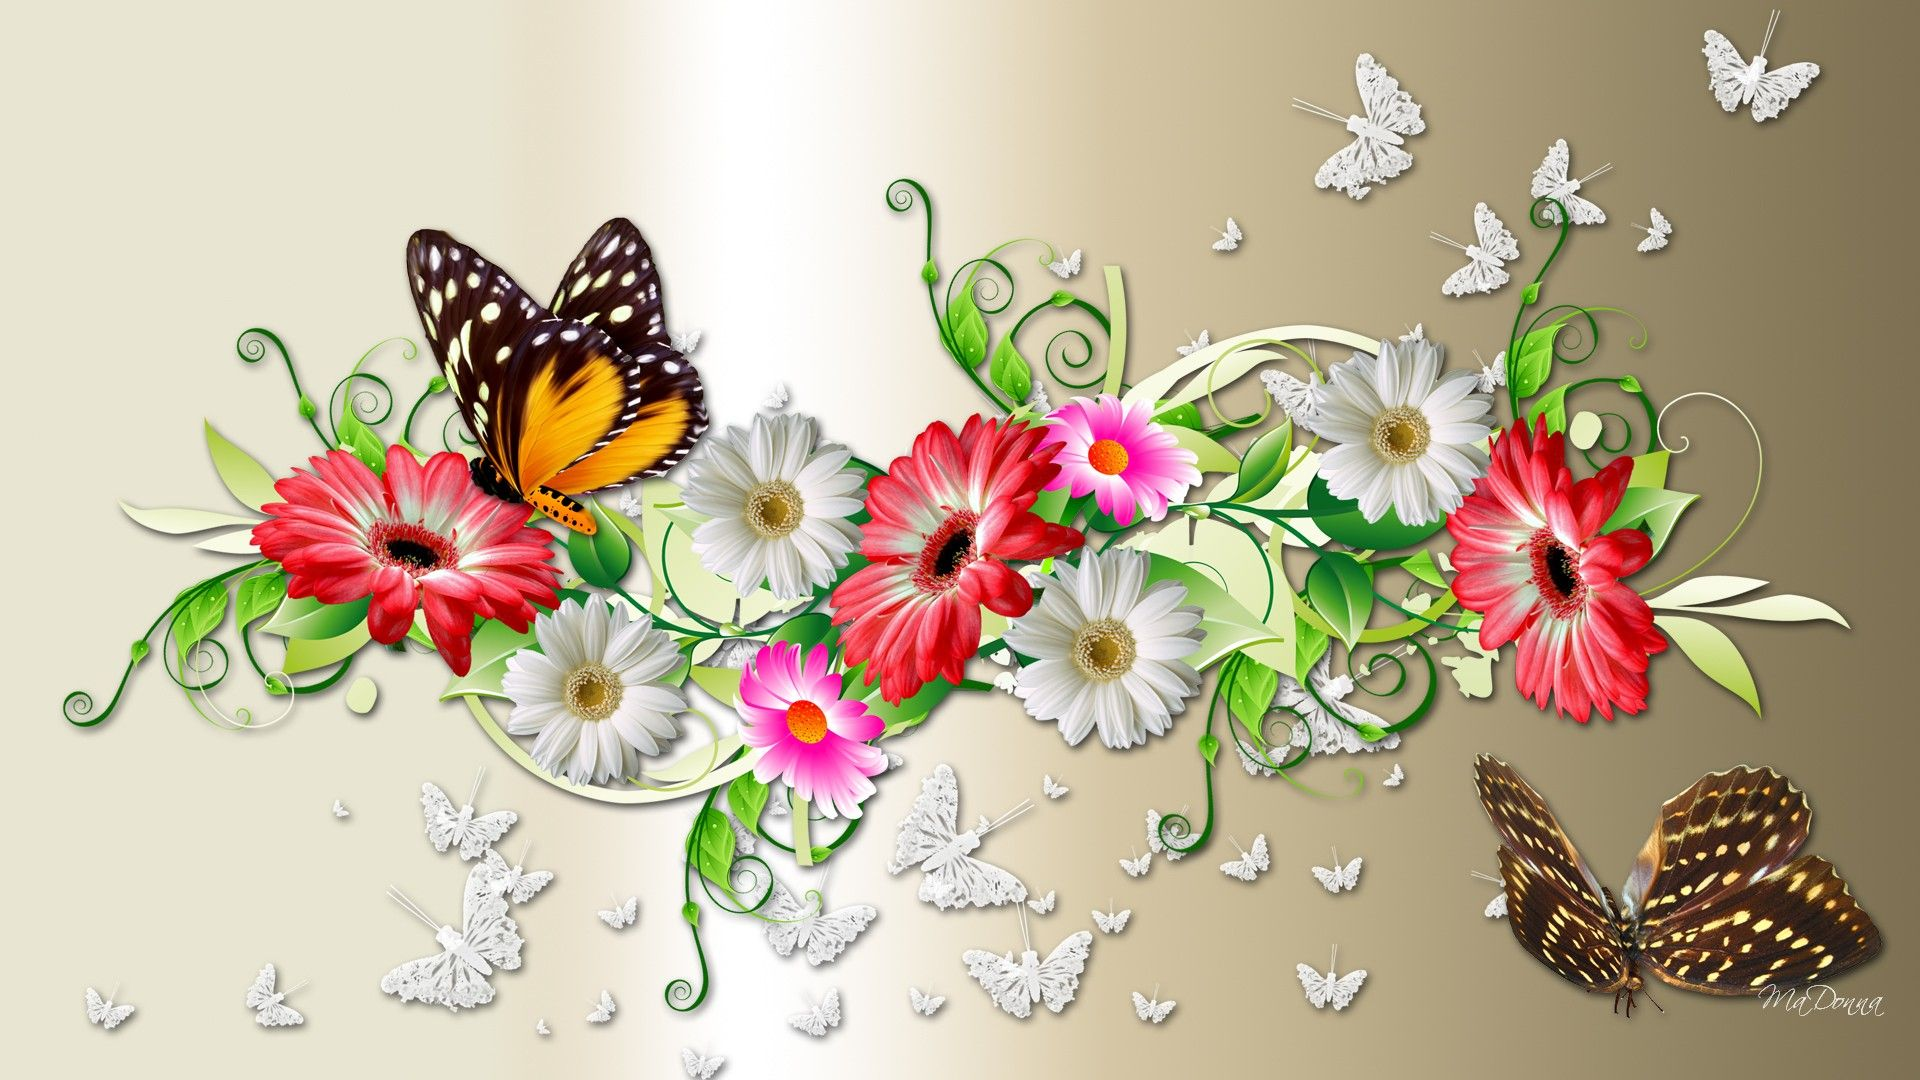 New Spring Flowers And Butterflies Wallpaper Butterfly Wallpaper